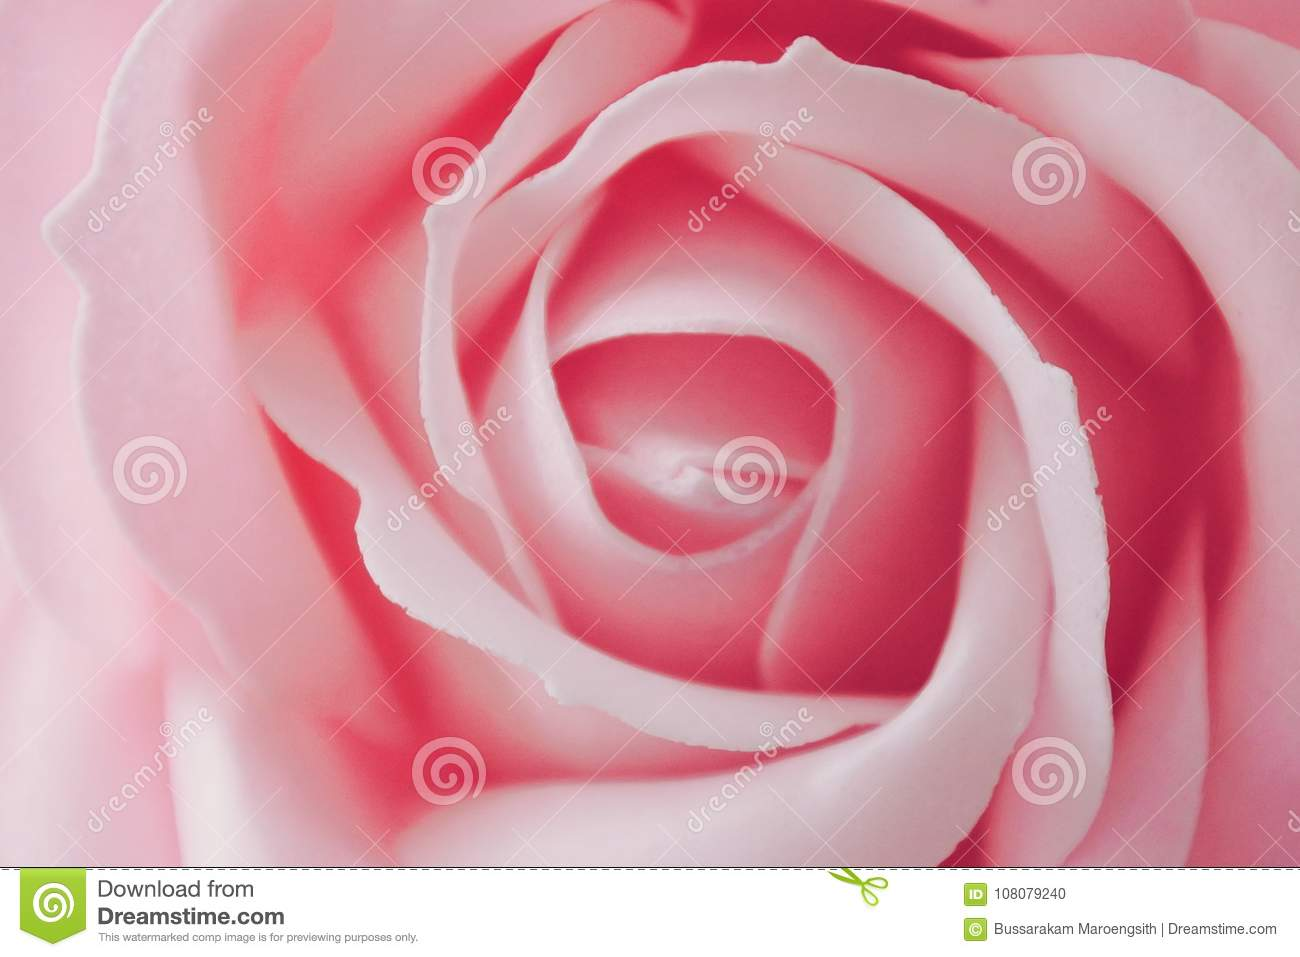 The Pink Rose Stock Photo Image Of Closeup Marriage 108079240